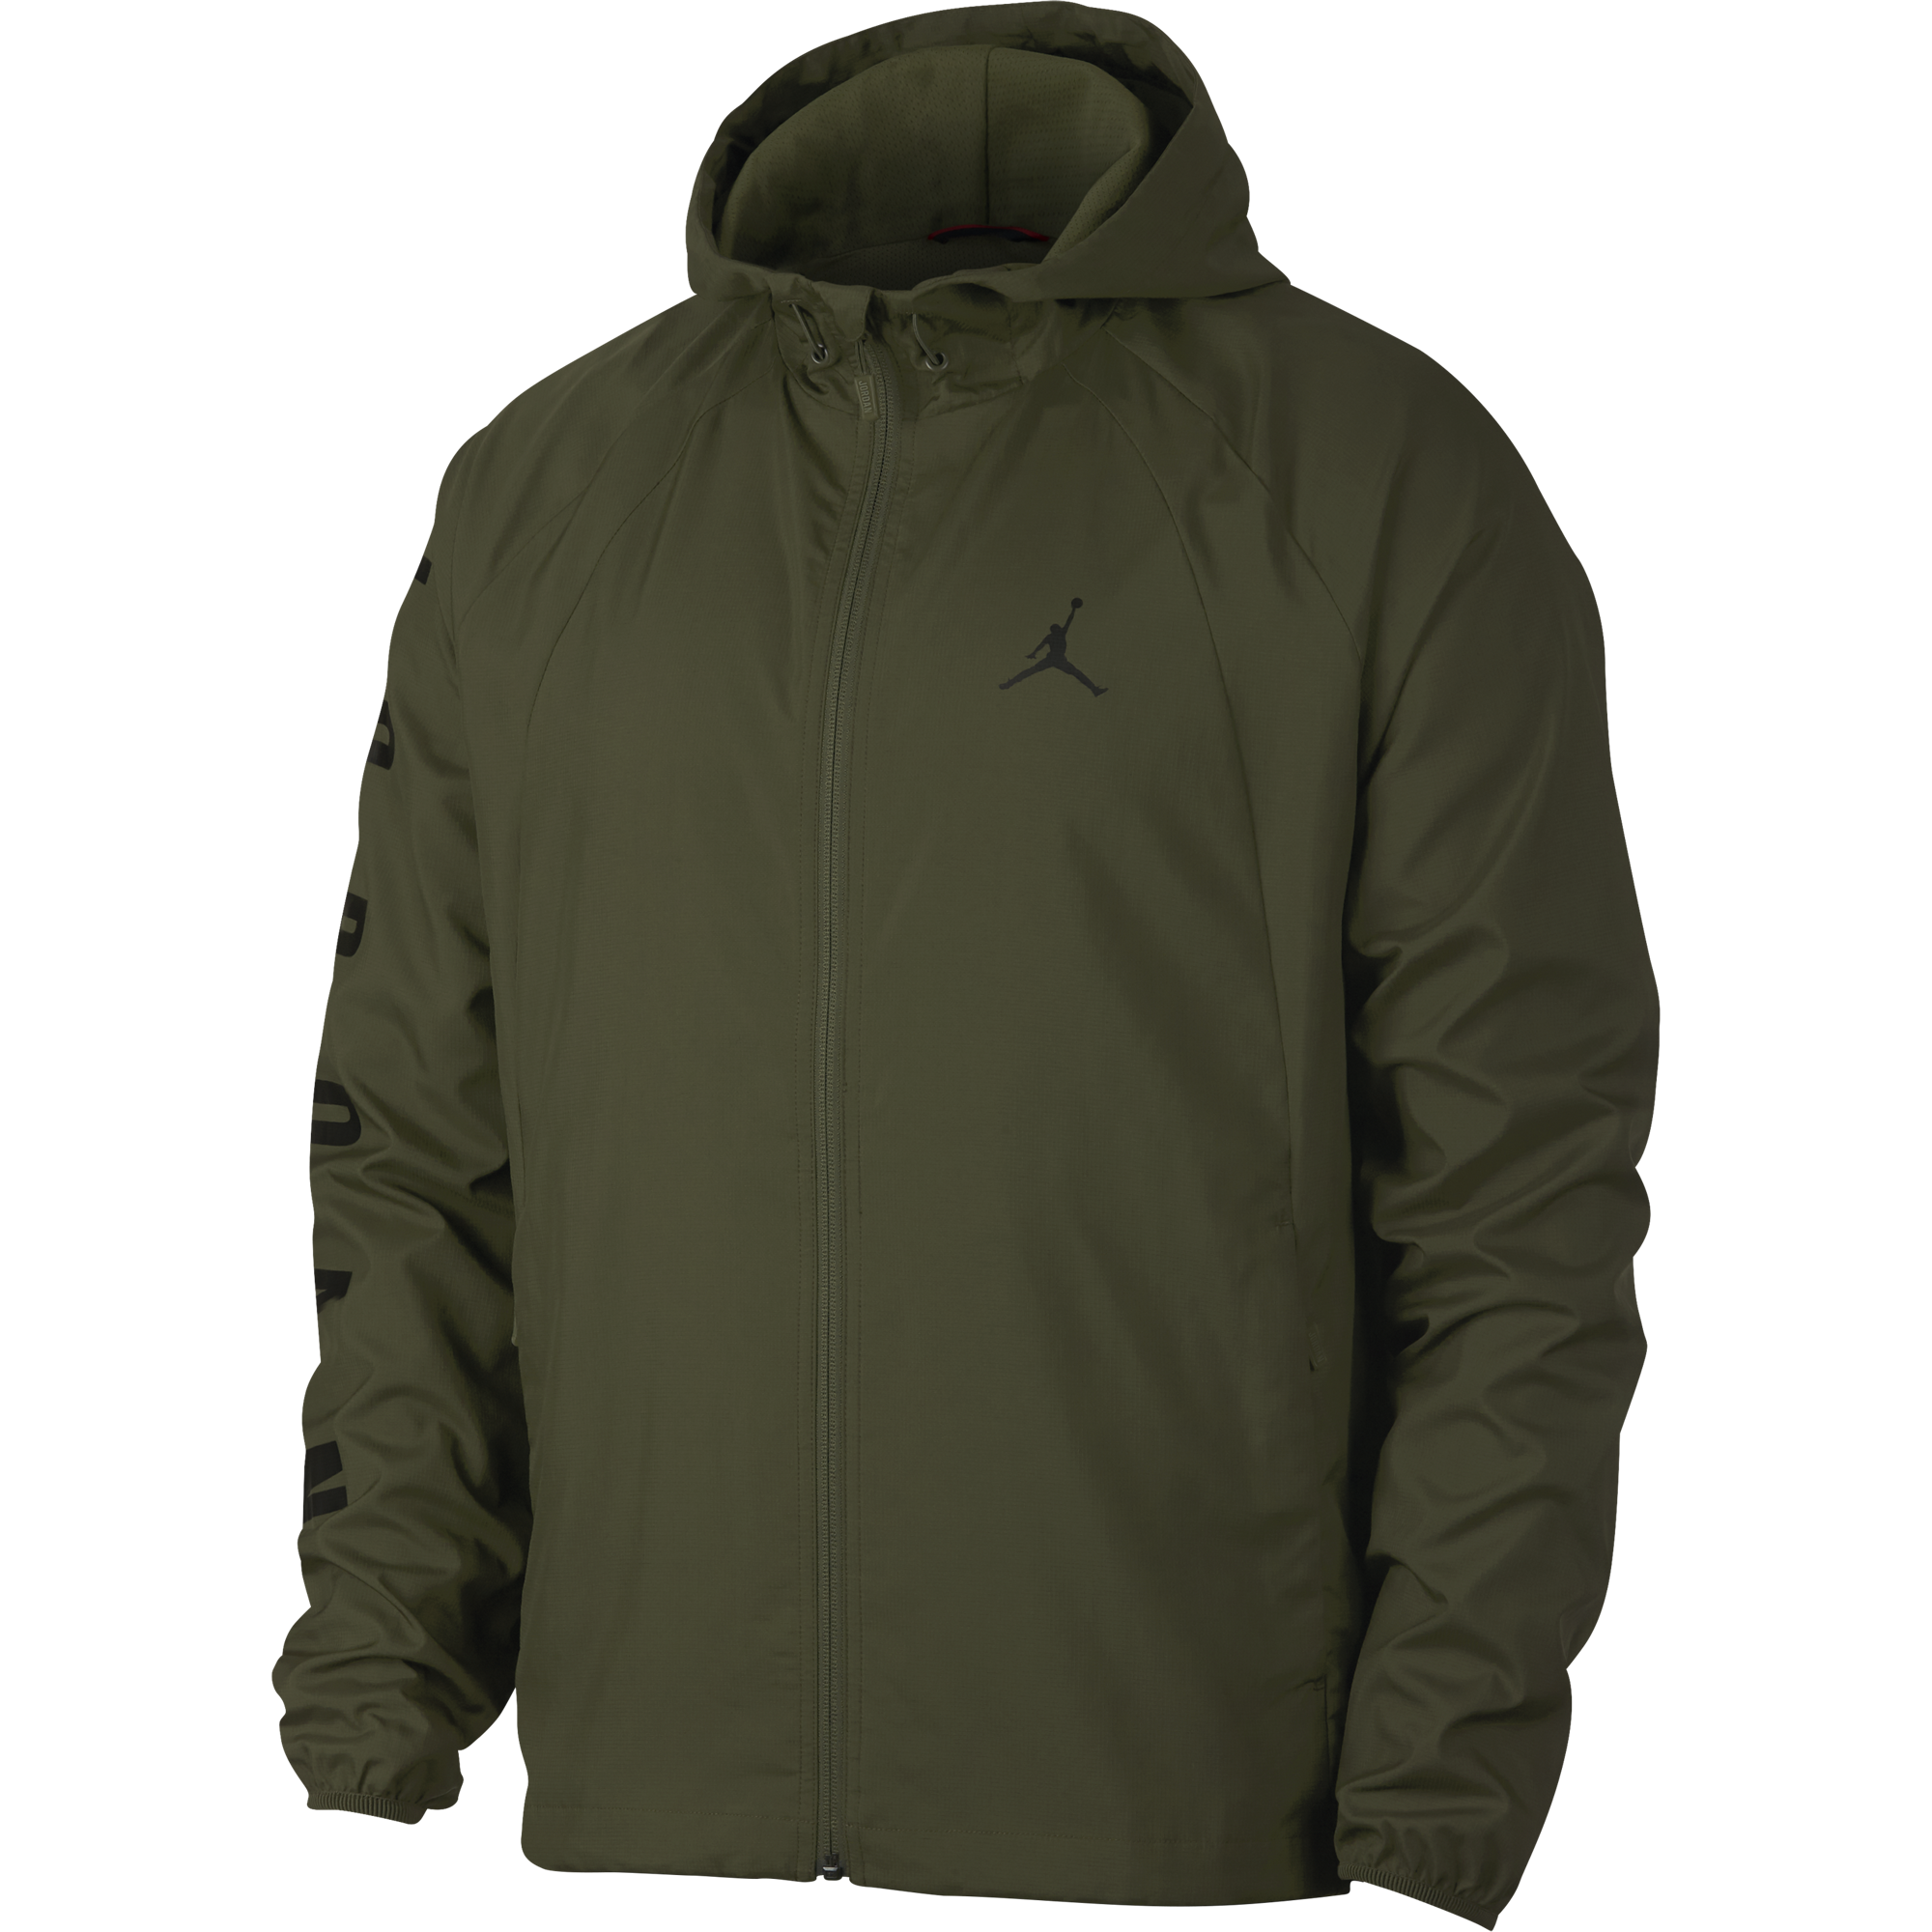 88b2cfc116682f AIR JORDAN SPORTSWEAR WINGS WINDBREAKER JACKET for £90.00 ...